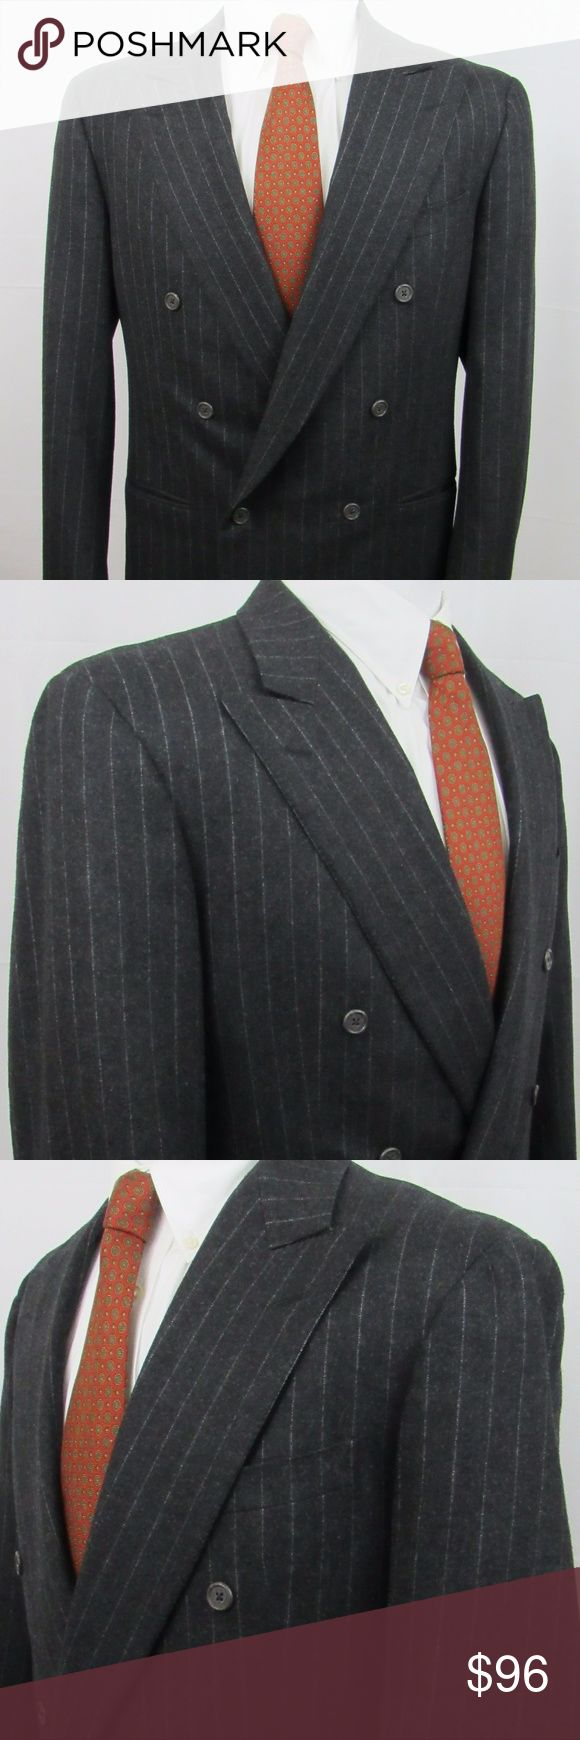 """Zegna 42L charcoal, wool suit made in Switzerland. VERY nice Ermenegildo Zegna classic double breasted 100% wool charcoal & grey striped suit. I don't find flaws but please zoom in throughout to evaluate). Appears to be made in 1990. I'm 6'4"""" (44L) and this fits small on me like I would expect an unaltered 42L to fit (if that helps as a gauge). My best measurements: Coat Shoulder: 20"""" Pit to pit:: 23"""" Length: 31 1/2"""" Sleeve: 34 1/2 (2"""" extra material)  Trousers Waist: 34"""" Rise: 12"""" Inseam…"""